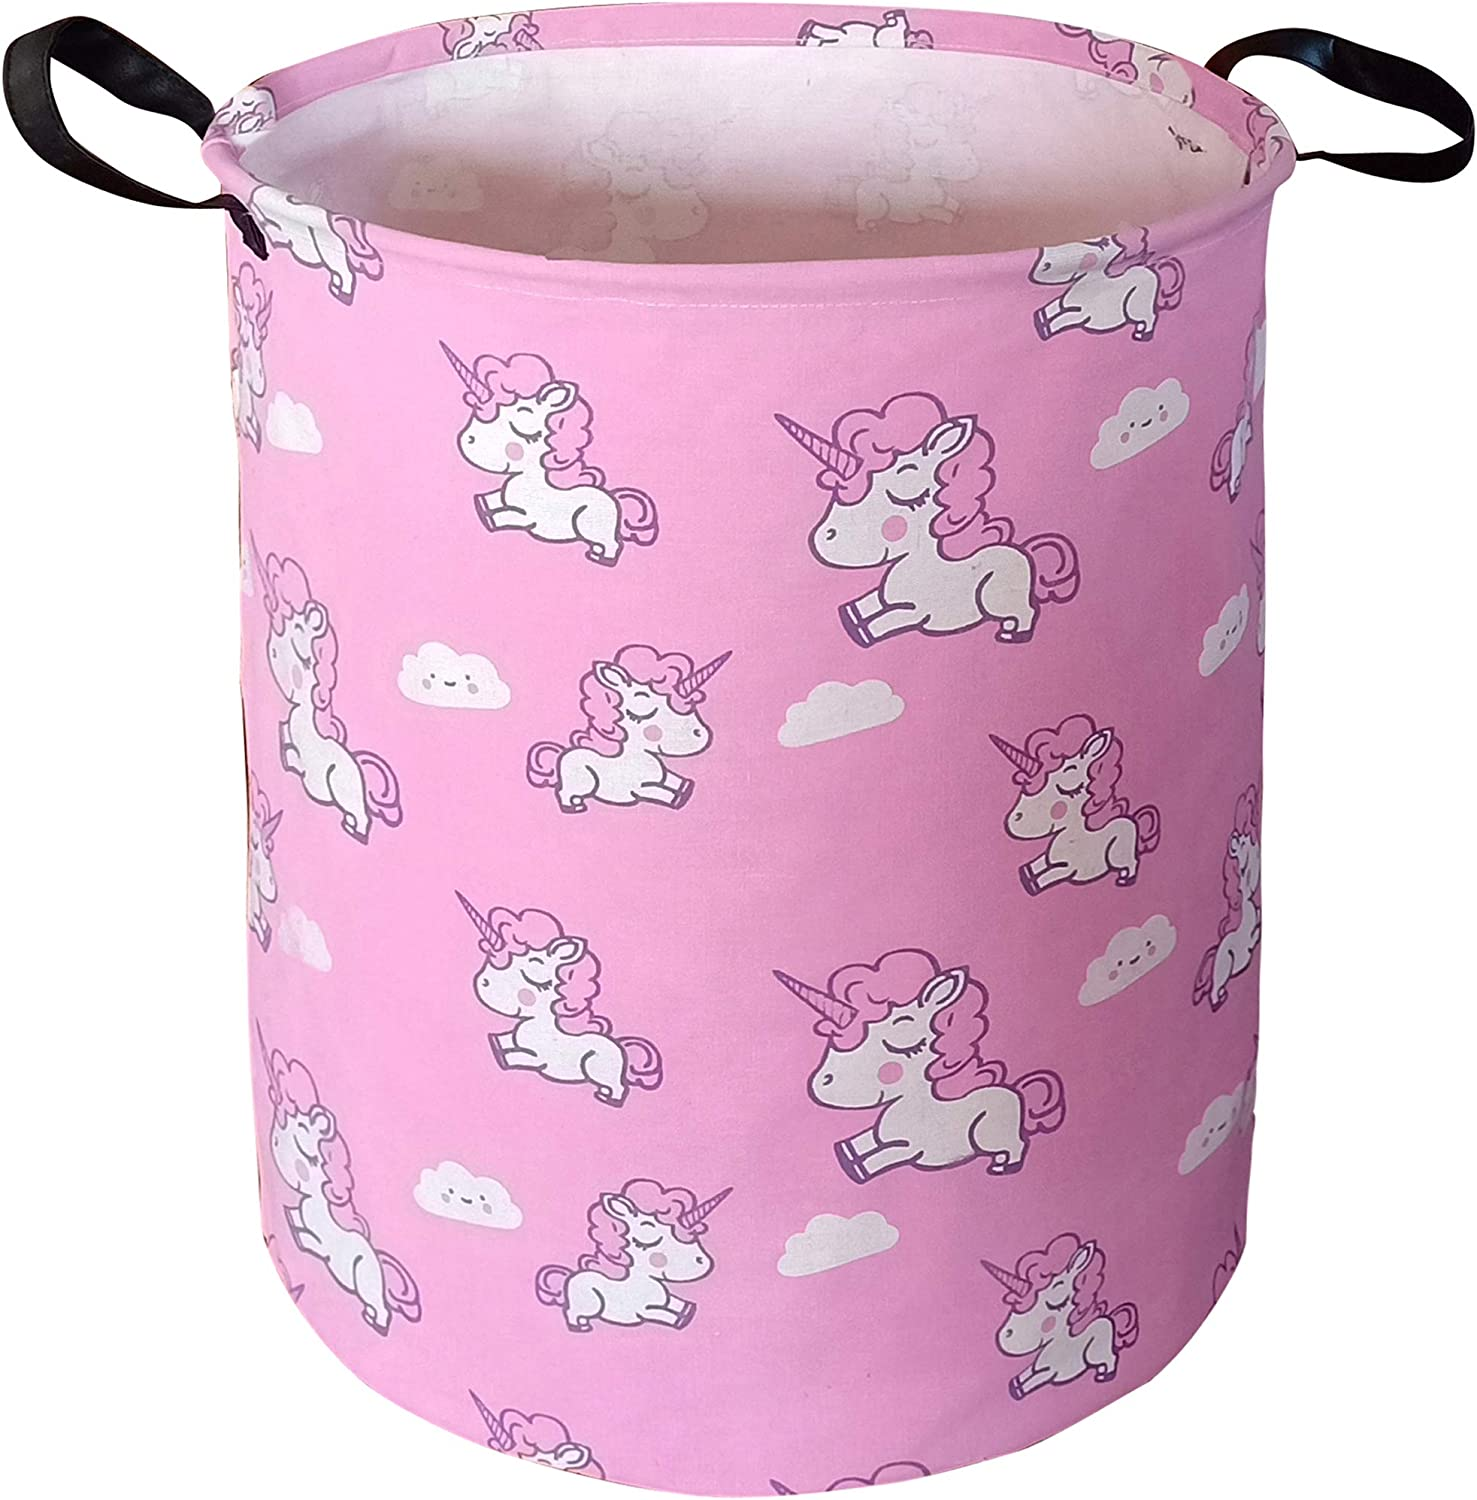 KUNRO Large Sized Storage Basket Waterproof Coating Organizer Bin Laundry Hamper for Nursery Clothes Toys (Pink Unicorn)